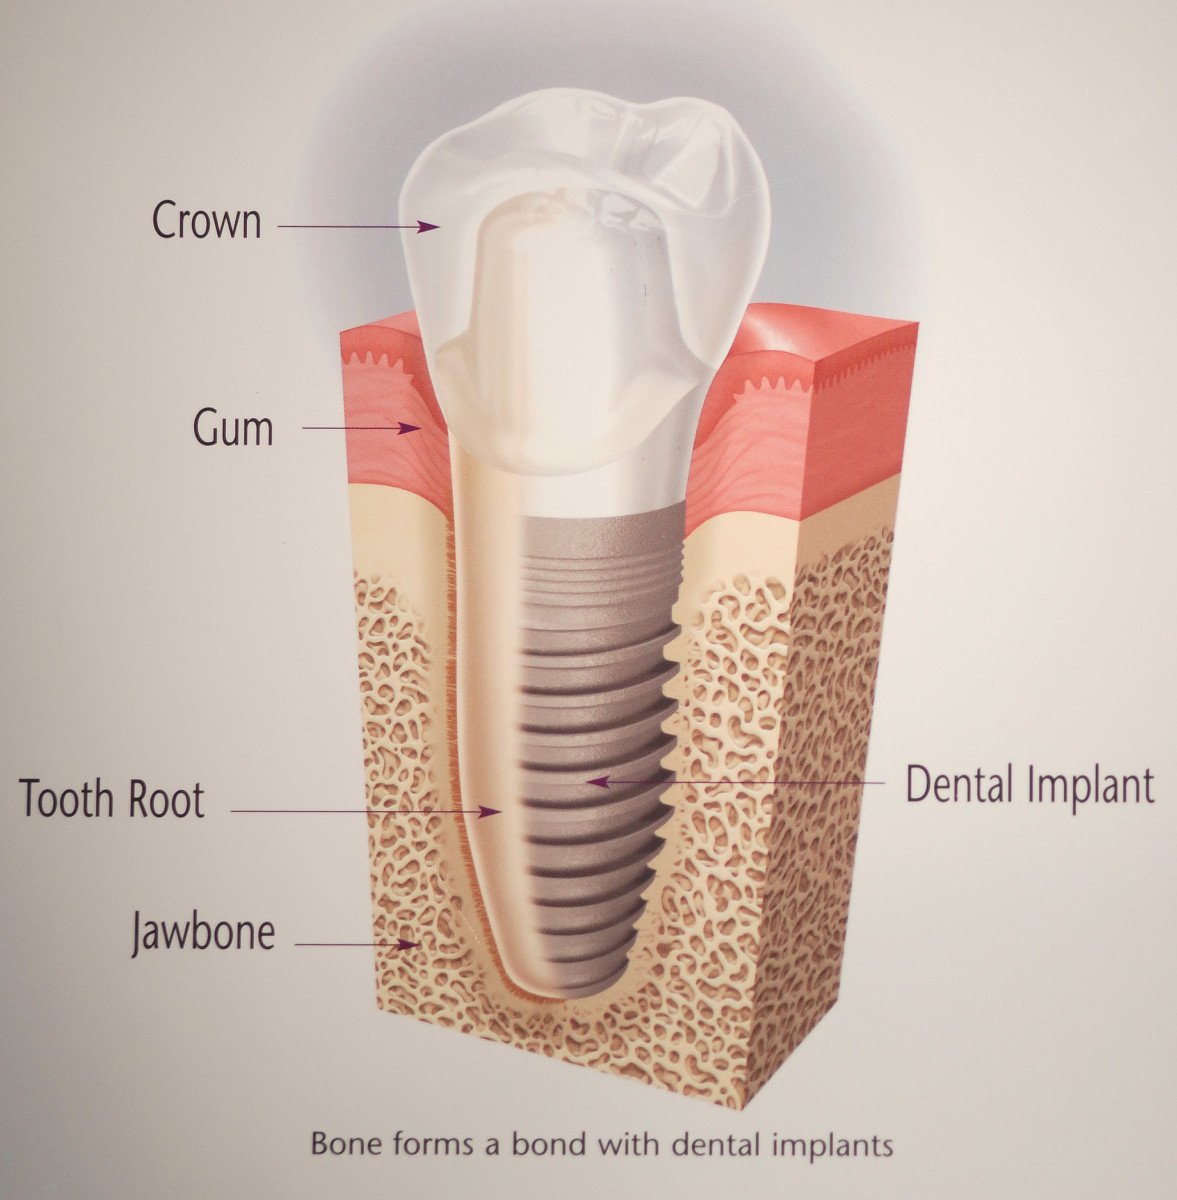 Diagram comparing natural tooth (on left) with implant tooth (on right). Image courtesy of Nobel Biocare patient education materials.